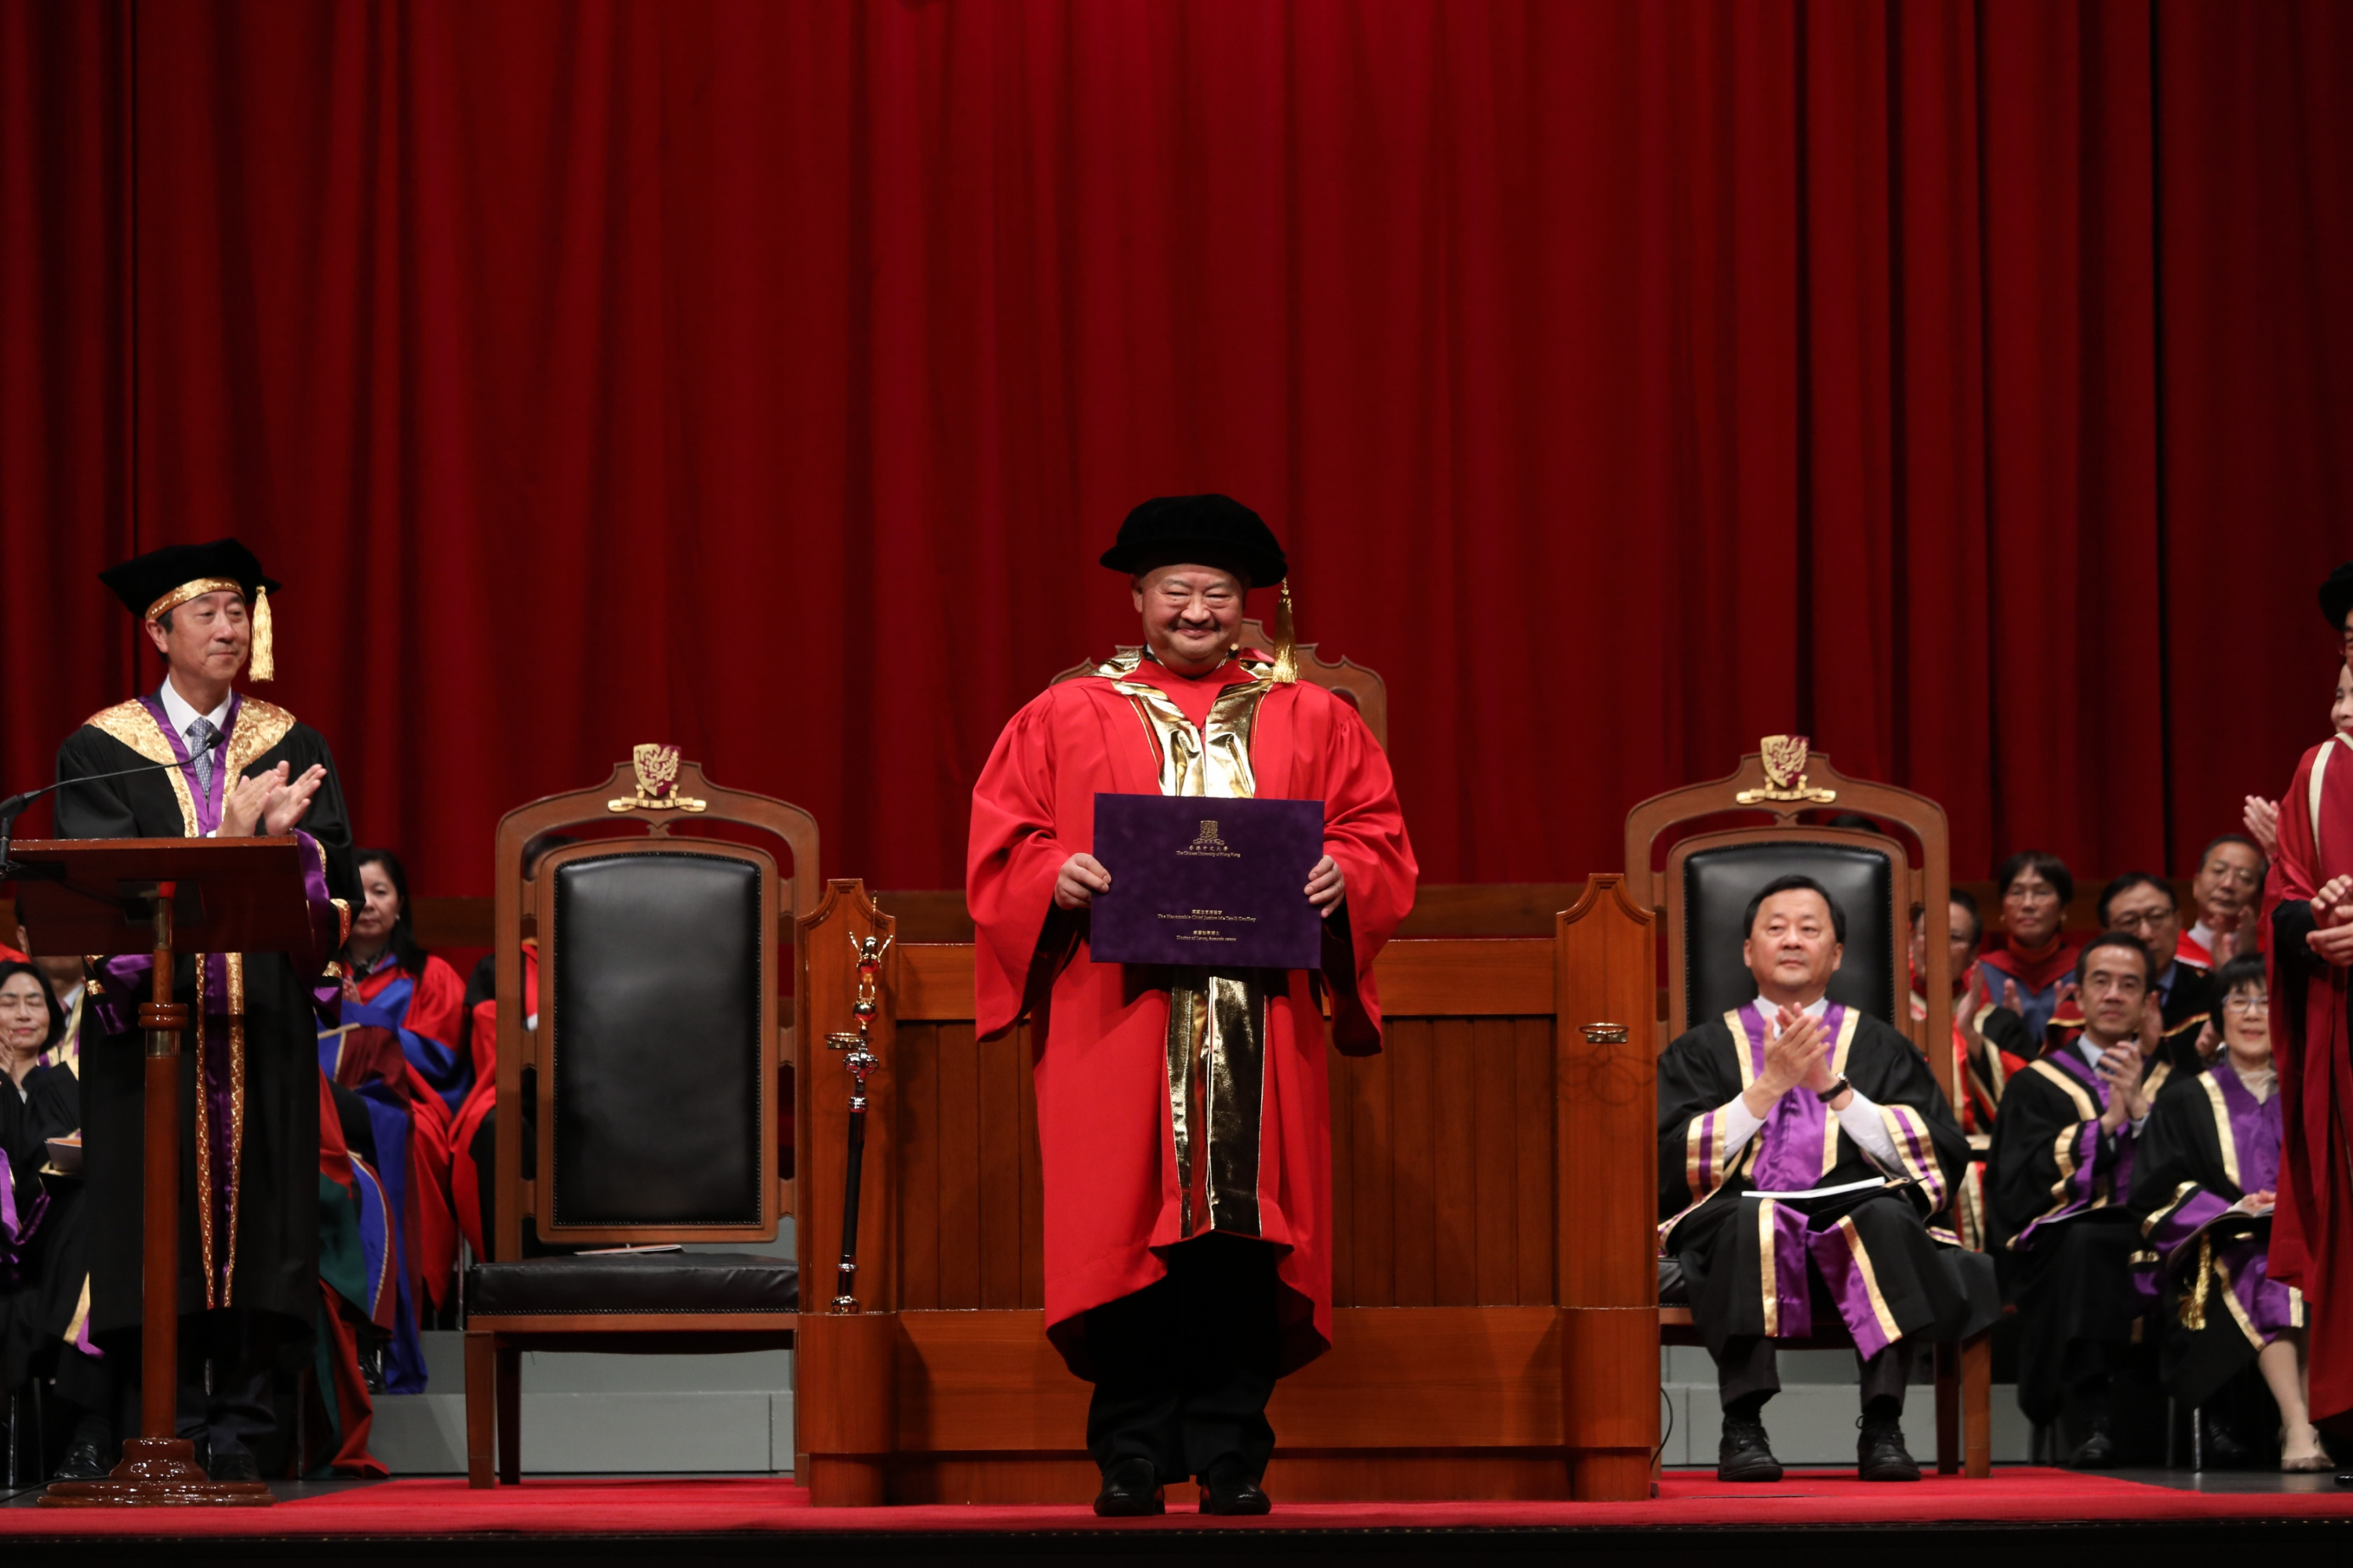 The Honourable Chief Justice Ma Tao-li, Geoffrey receives the degree of Doctor of Laws, honoris causa.